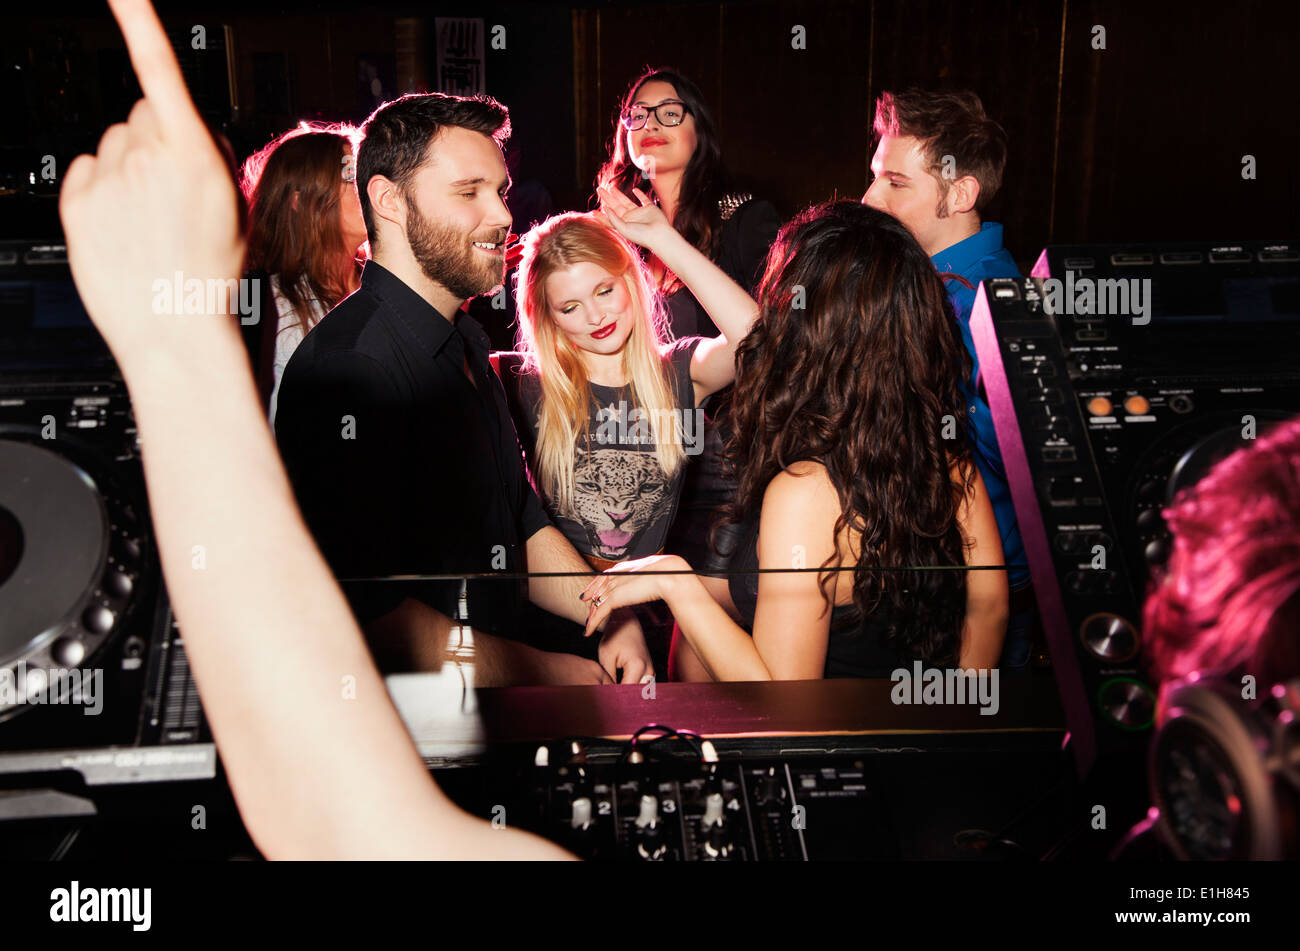 Group of young men and women dancing in front of DJ in nightclub - Stock Image